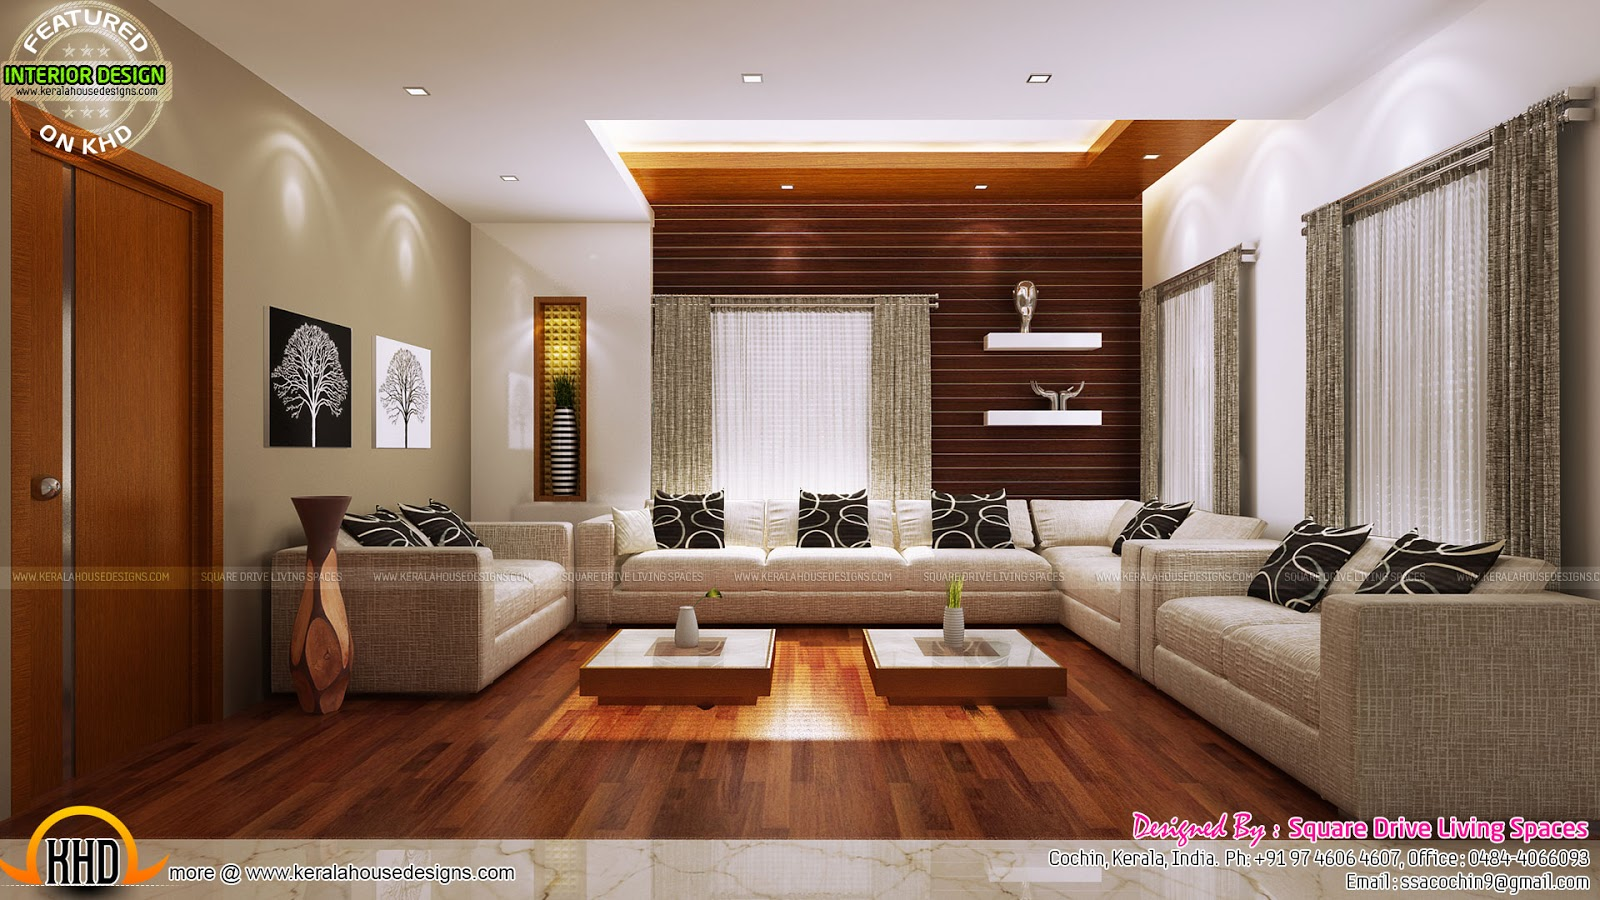 Excellent kerala interior design kerala home design and for Living room interior in kerala